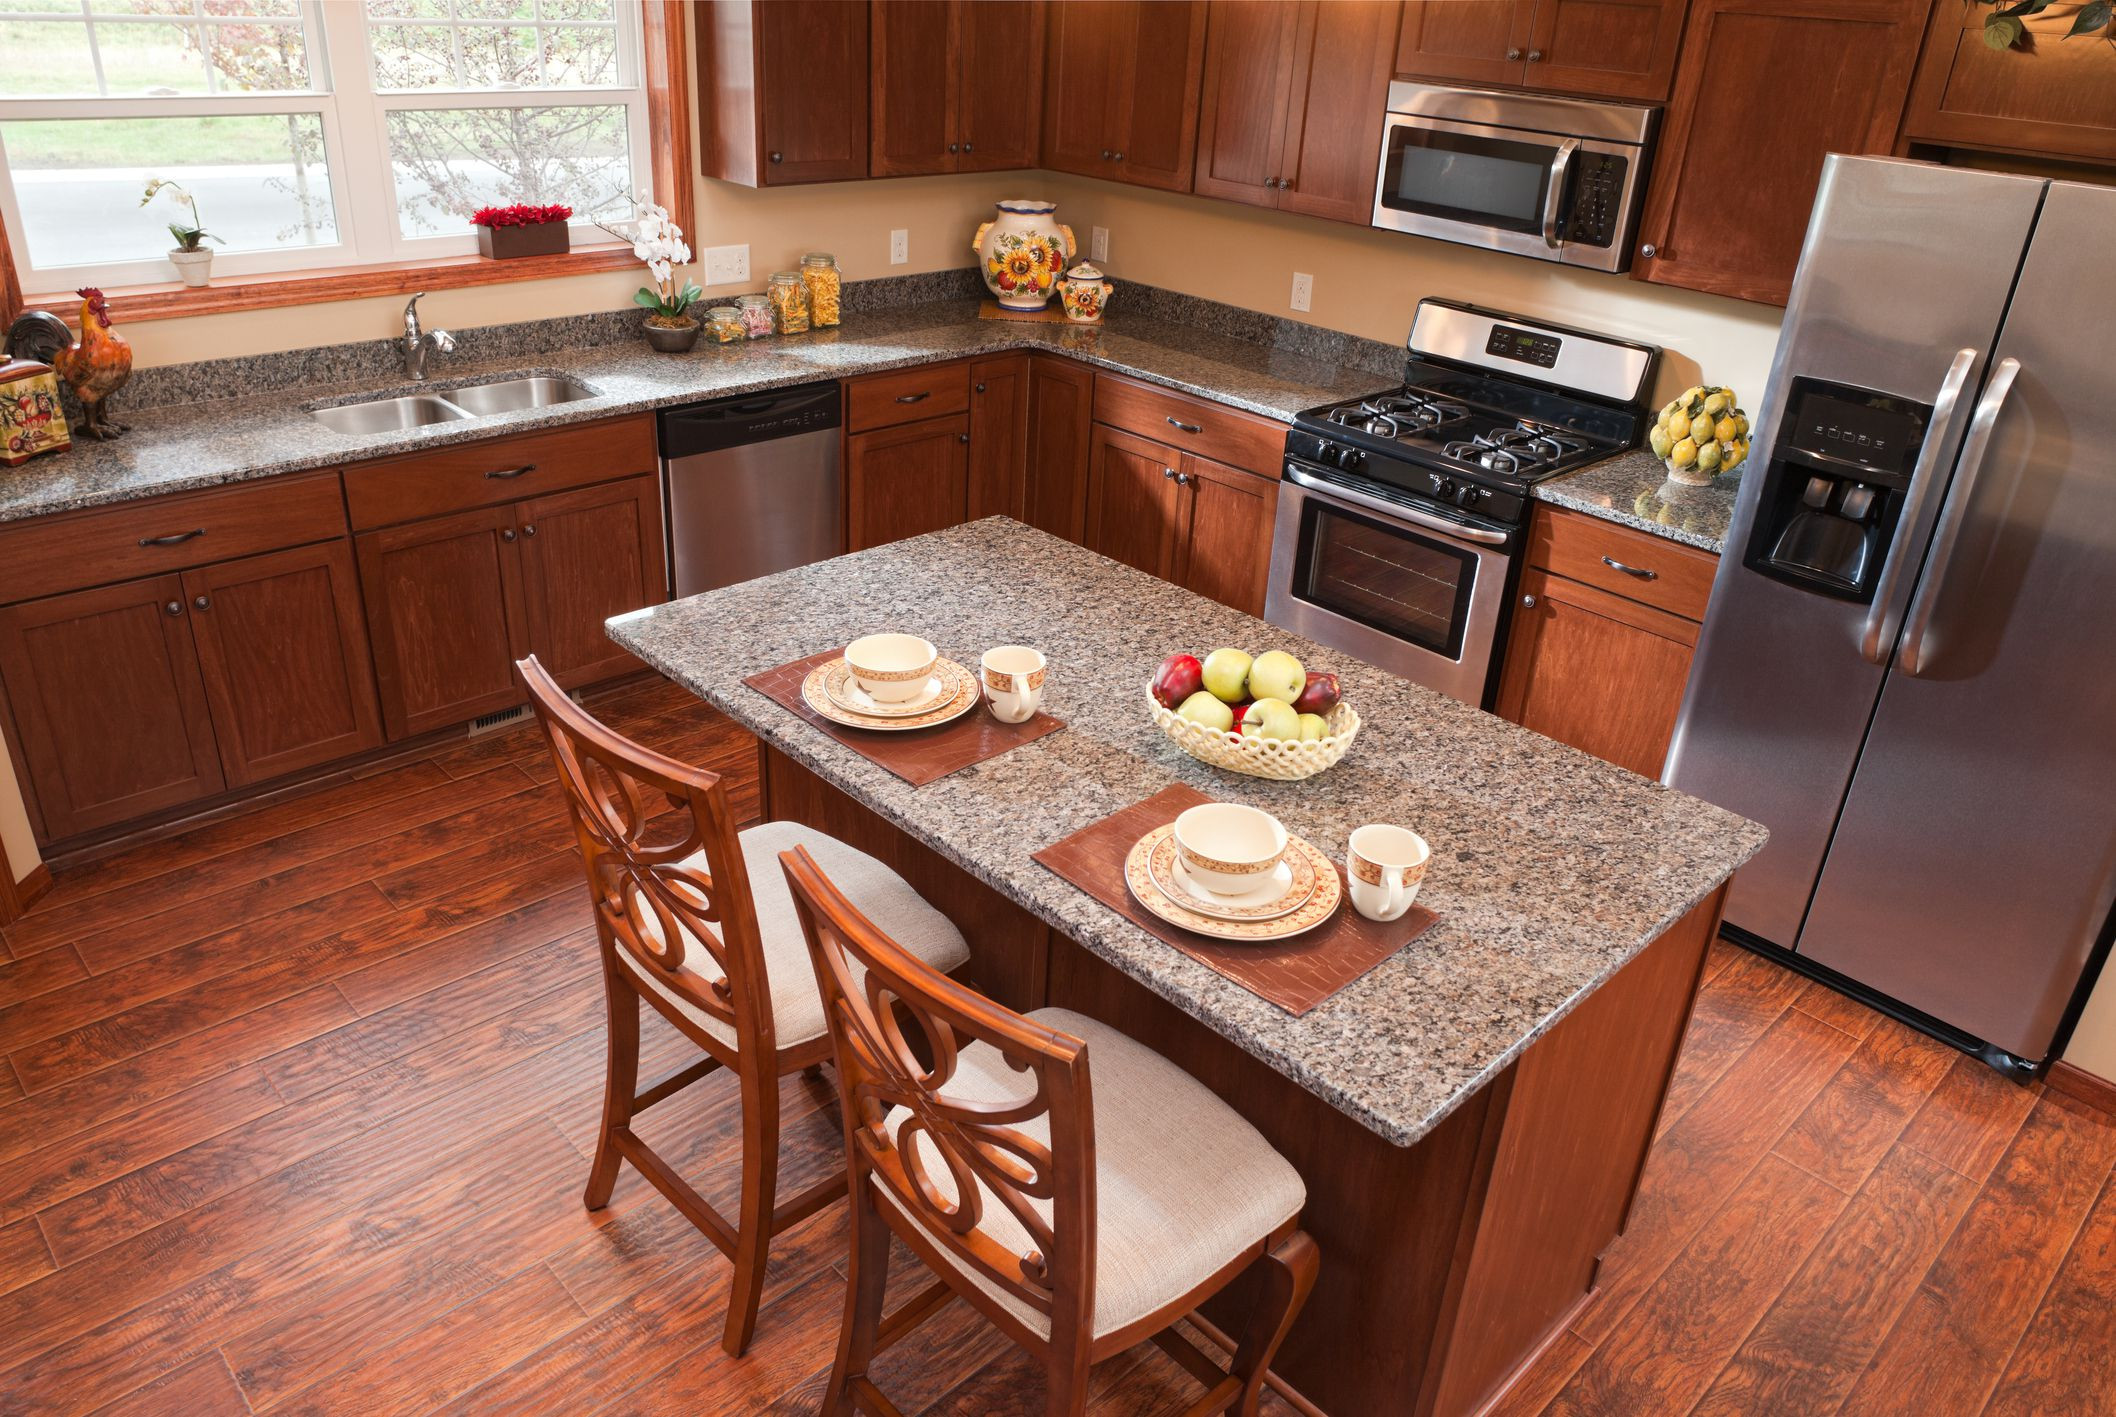 hardwood floor color with white cabinets of can you install laminate flooring in the kitchen within kitchen laminate floor gettyimages 155098316 5895140c5f9b5874ee5f7711